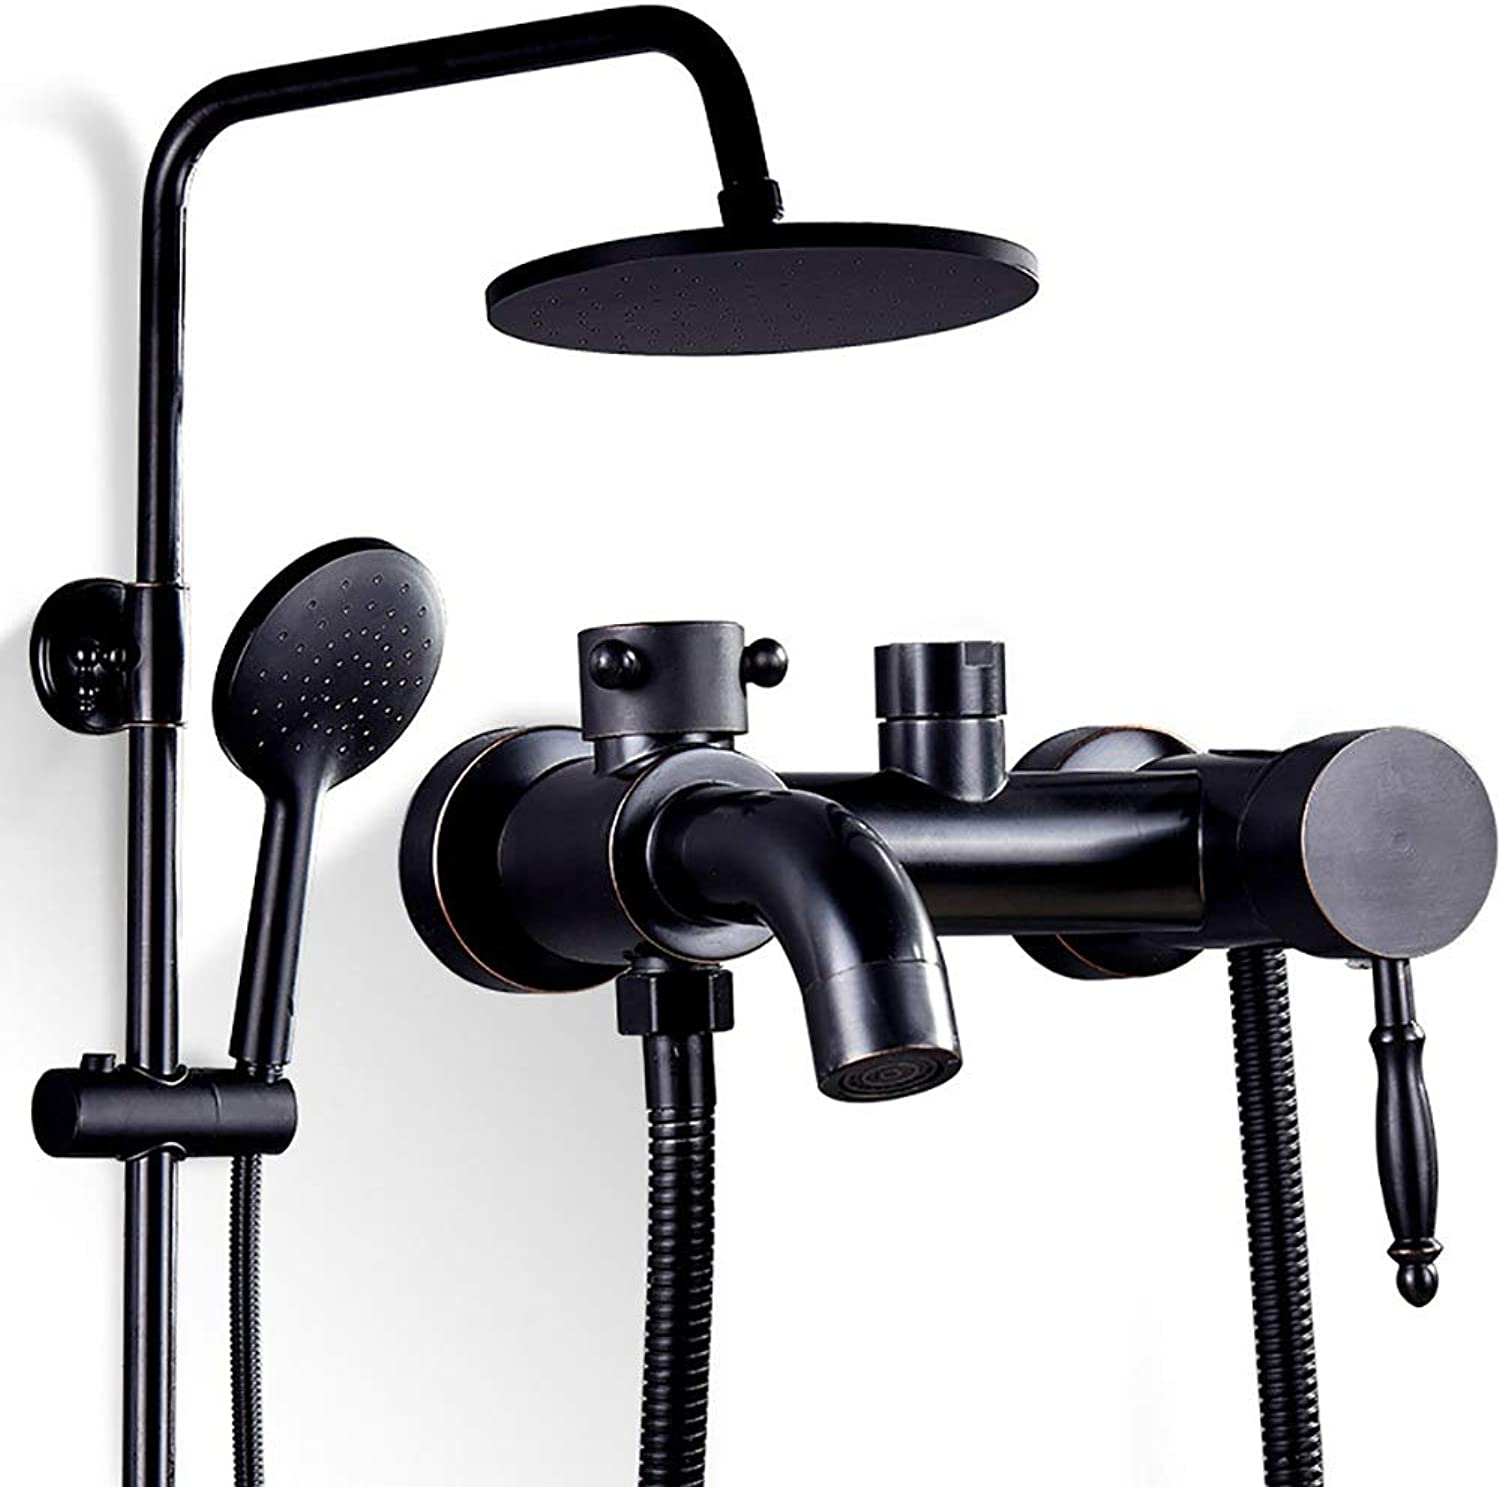 YYF-SHOWER Shower Systems Retro Copper Shower Set, Wall-mounted Free Lifting Hand Shower Bathroom redate Hot And Cold Water Tap (color   BLACK, Size   B)